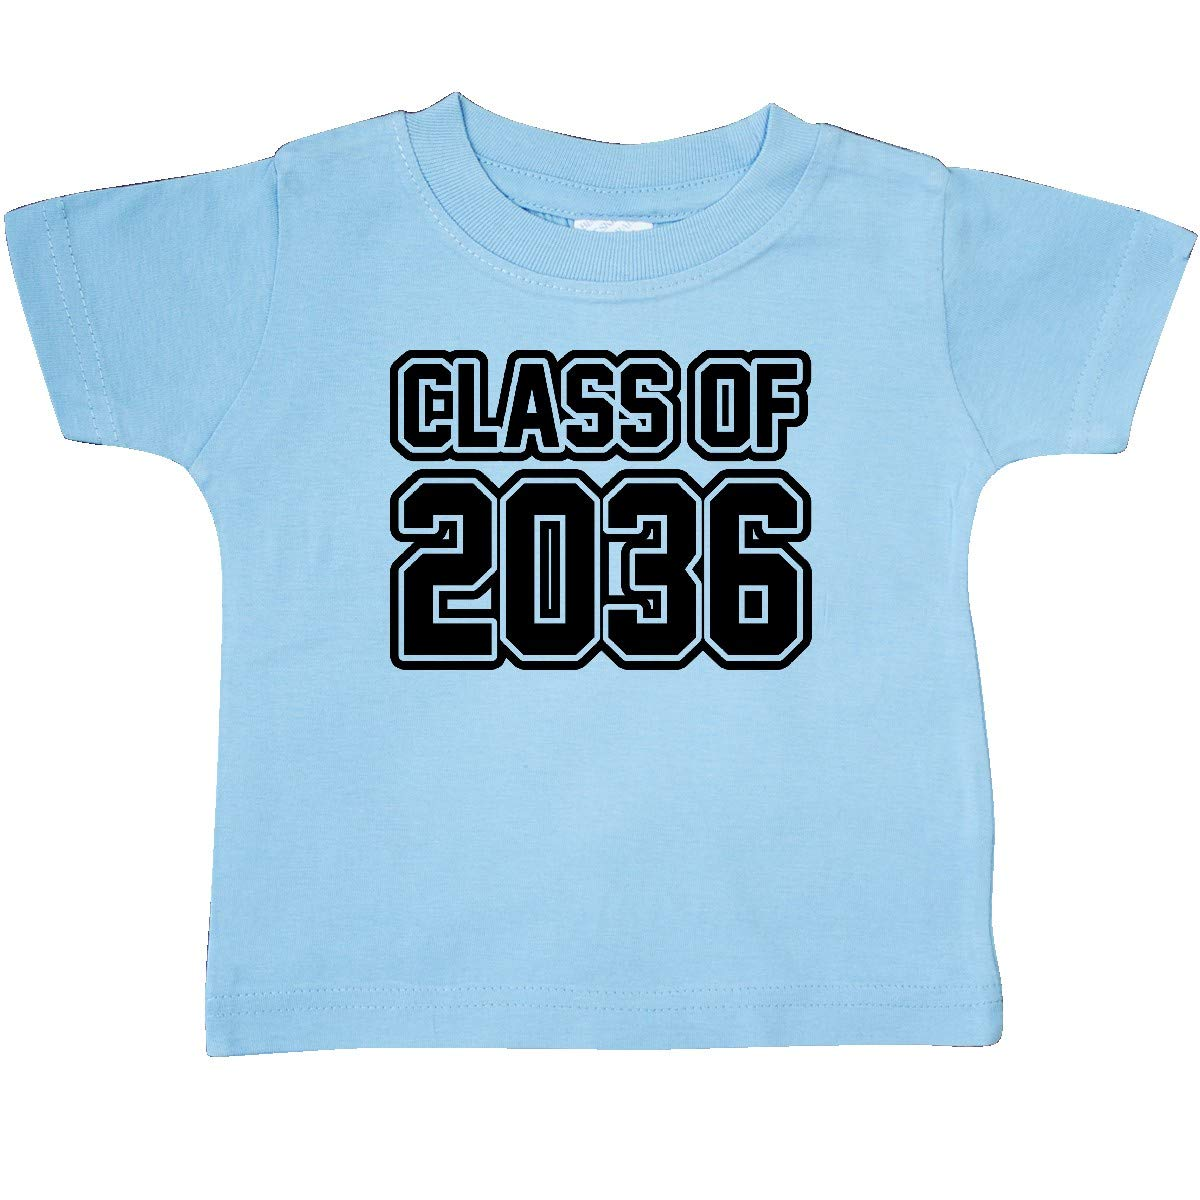 inktastic Class of 2036 in Black Outlined Text Baby T-Shirt